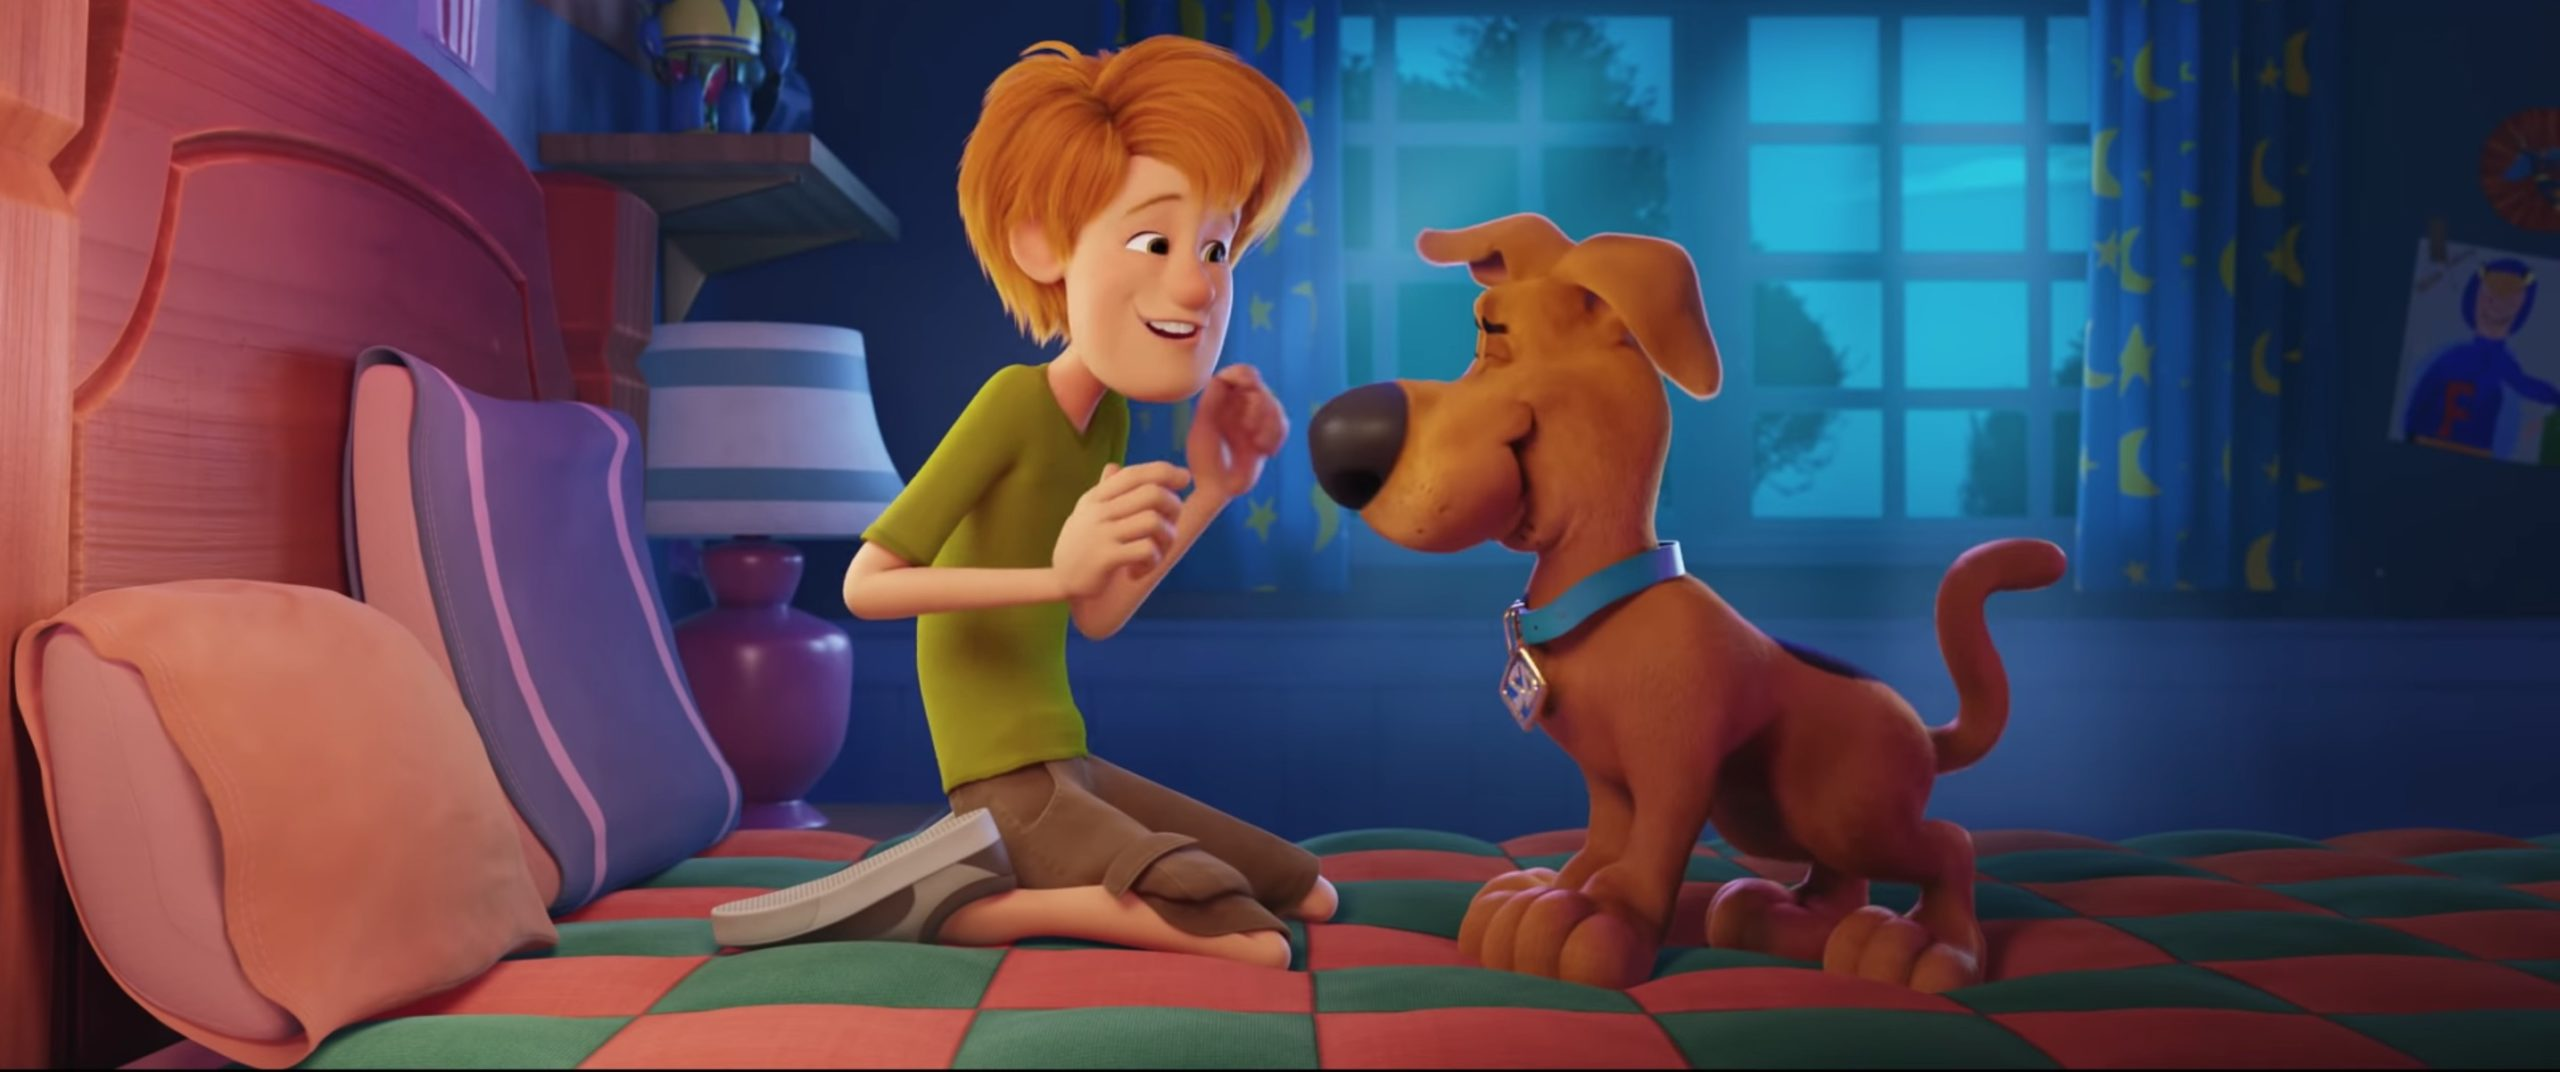 Image result for scoob trailer dog young